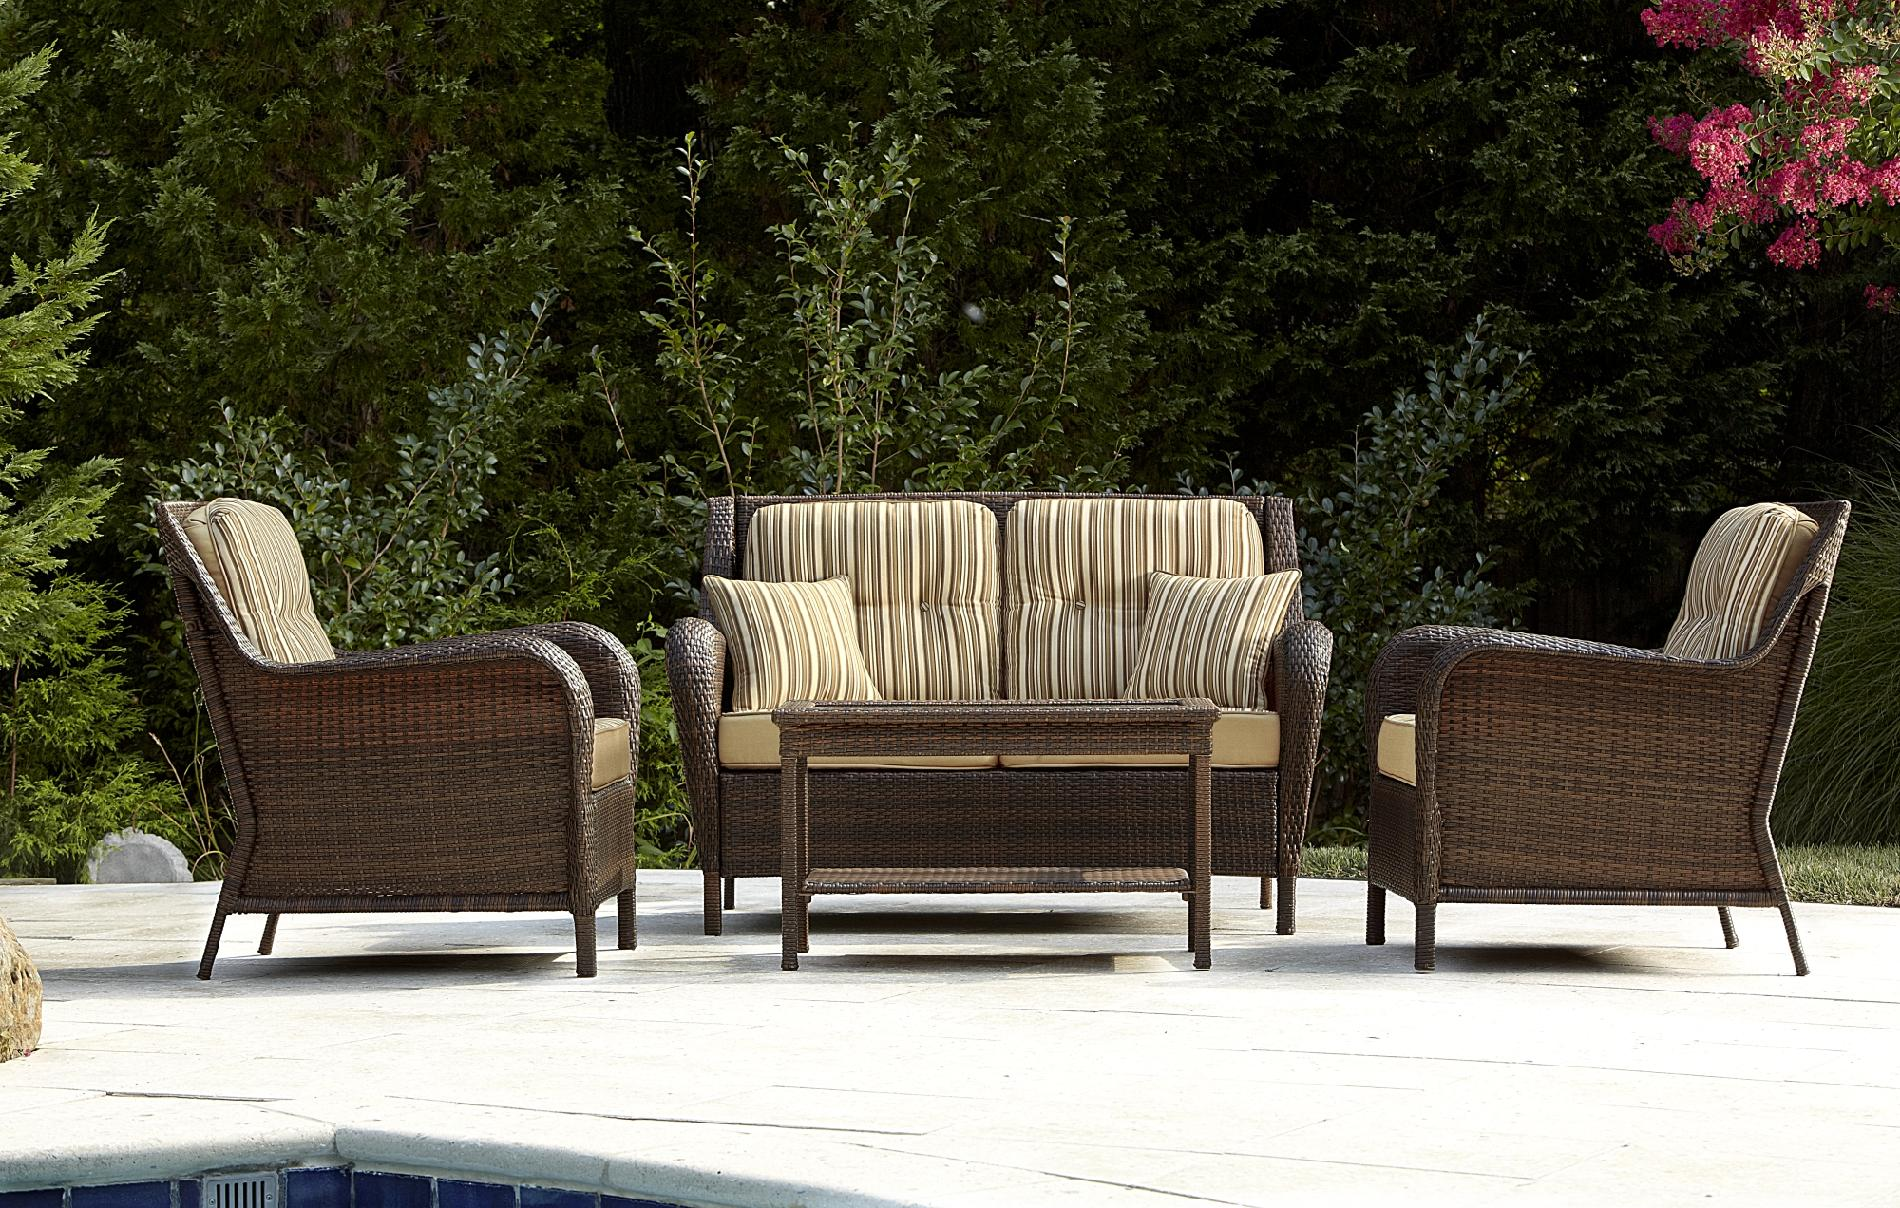 Mayfield 4 Pc. Deep Seating Set: Make Your Outdoors Fun